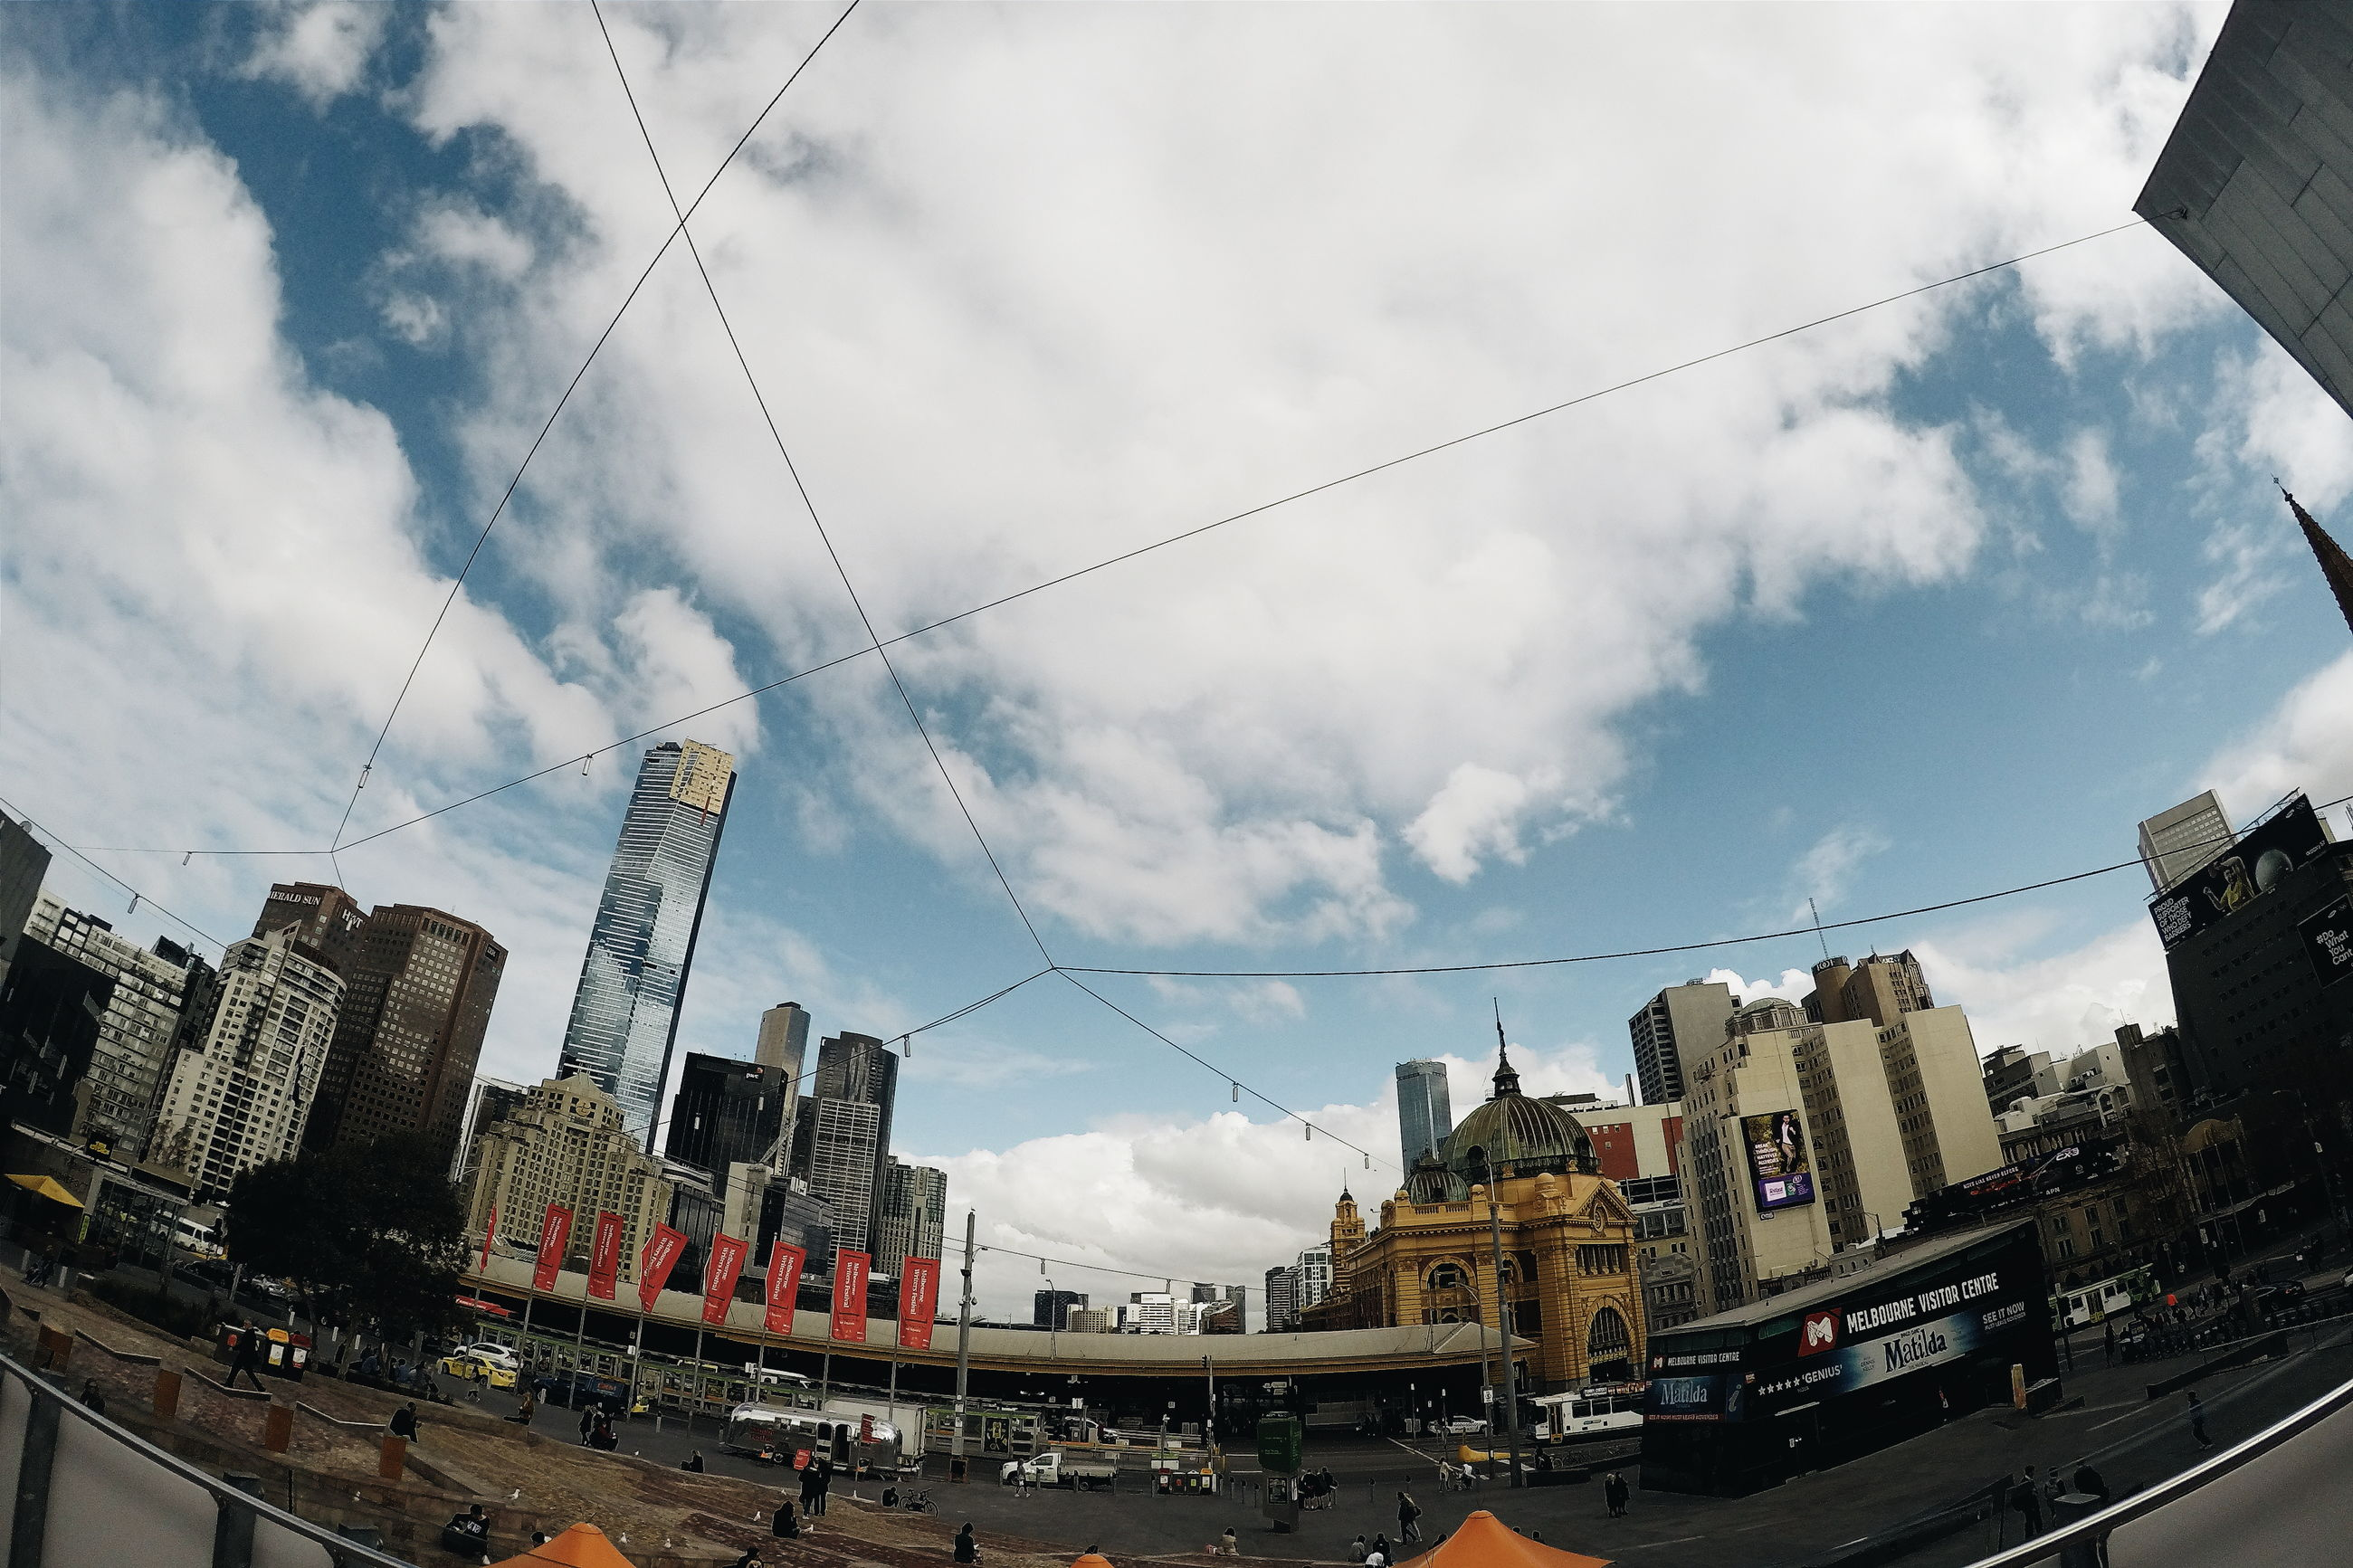 sky, transportation, building exterior, cloud - sky, built structure, architecture, city, cloud, low angle view, cable, power line, cloudy, day, city life, no people, tall - high, semi-truck